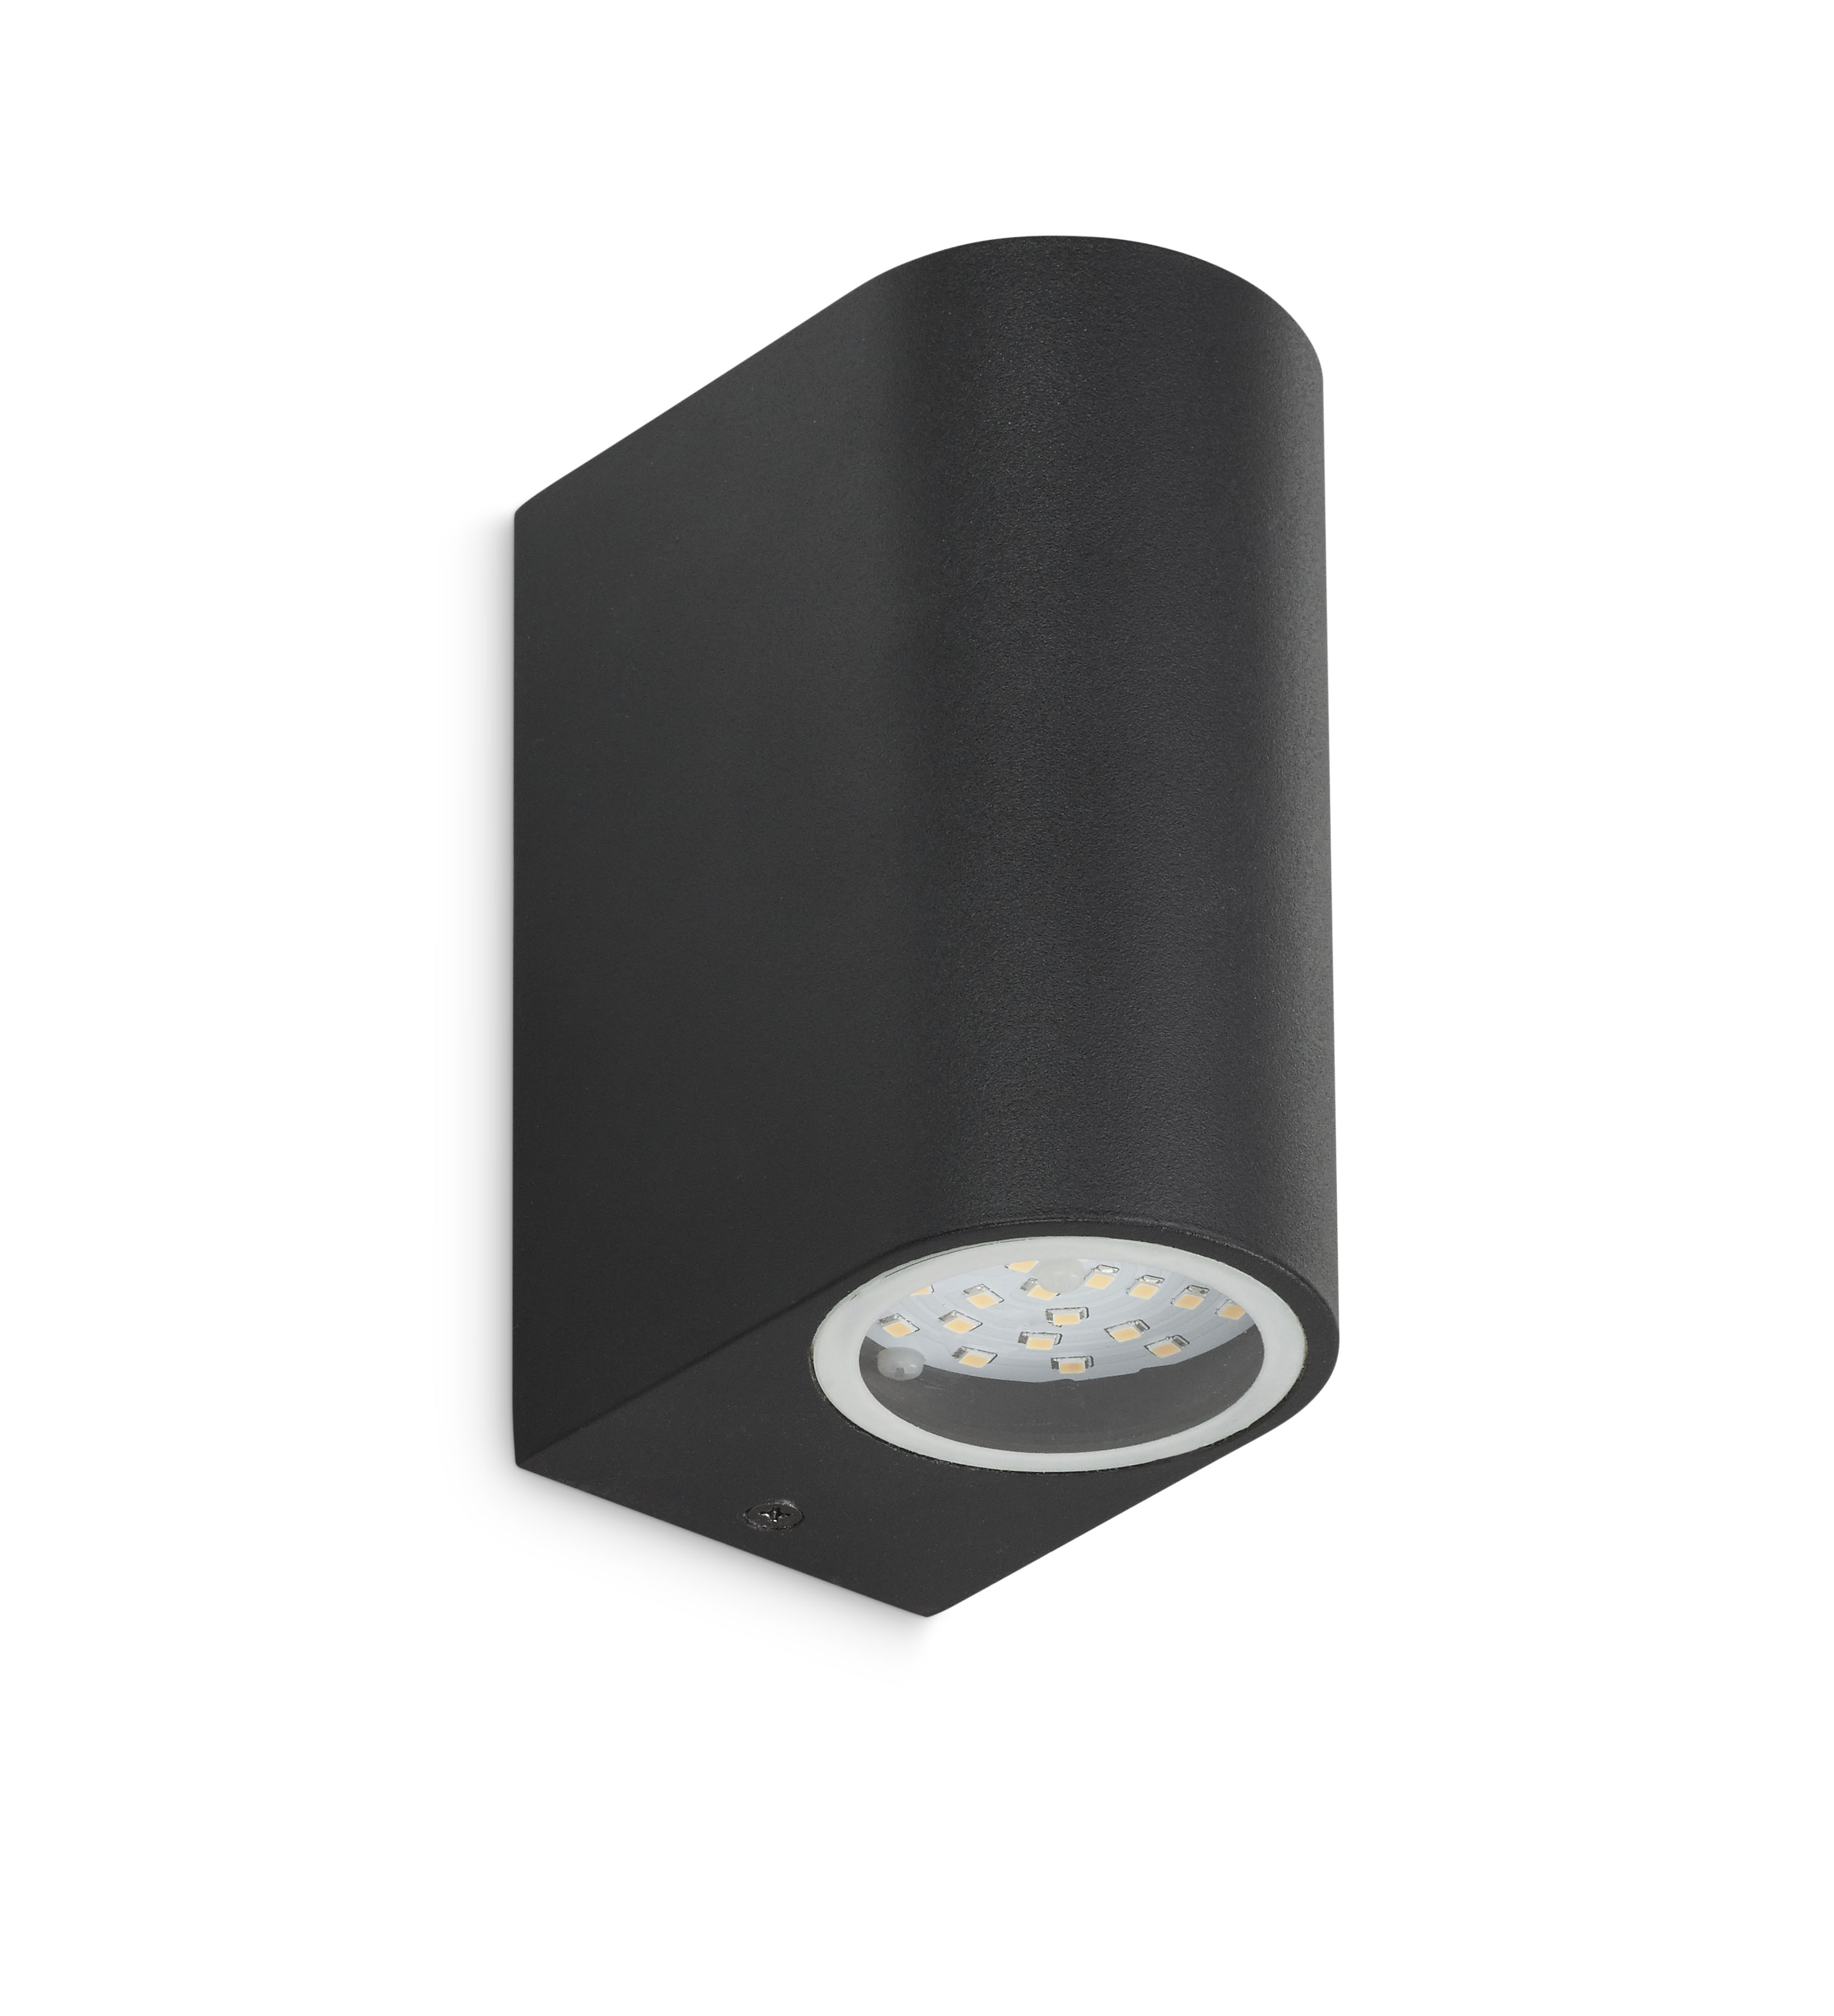 Wall light Up/Down LED integrated 2x3W black